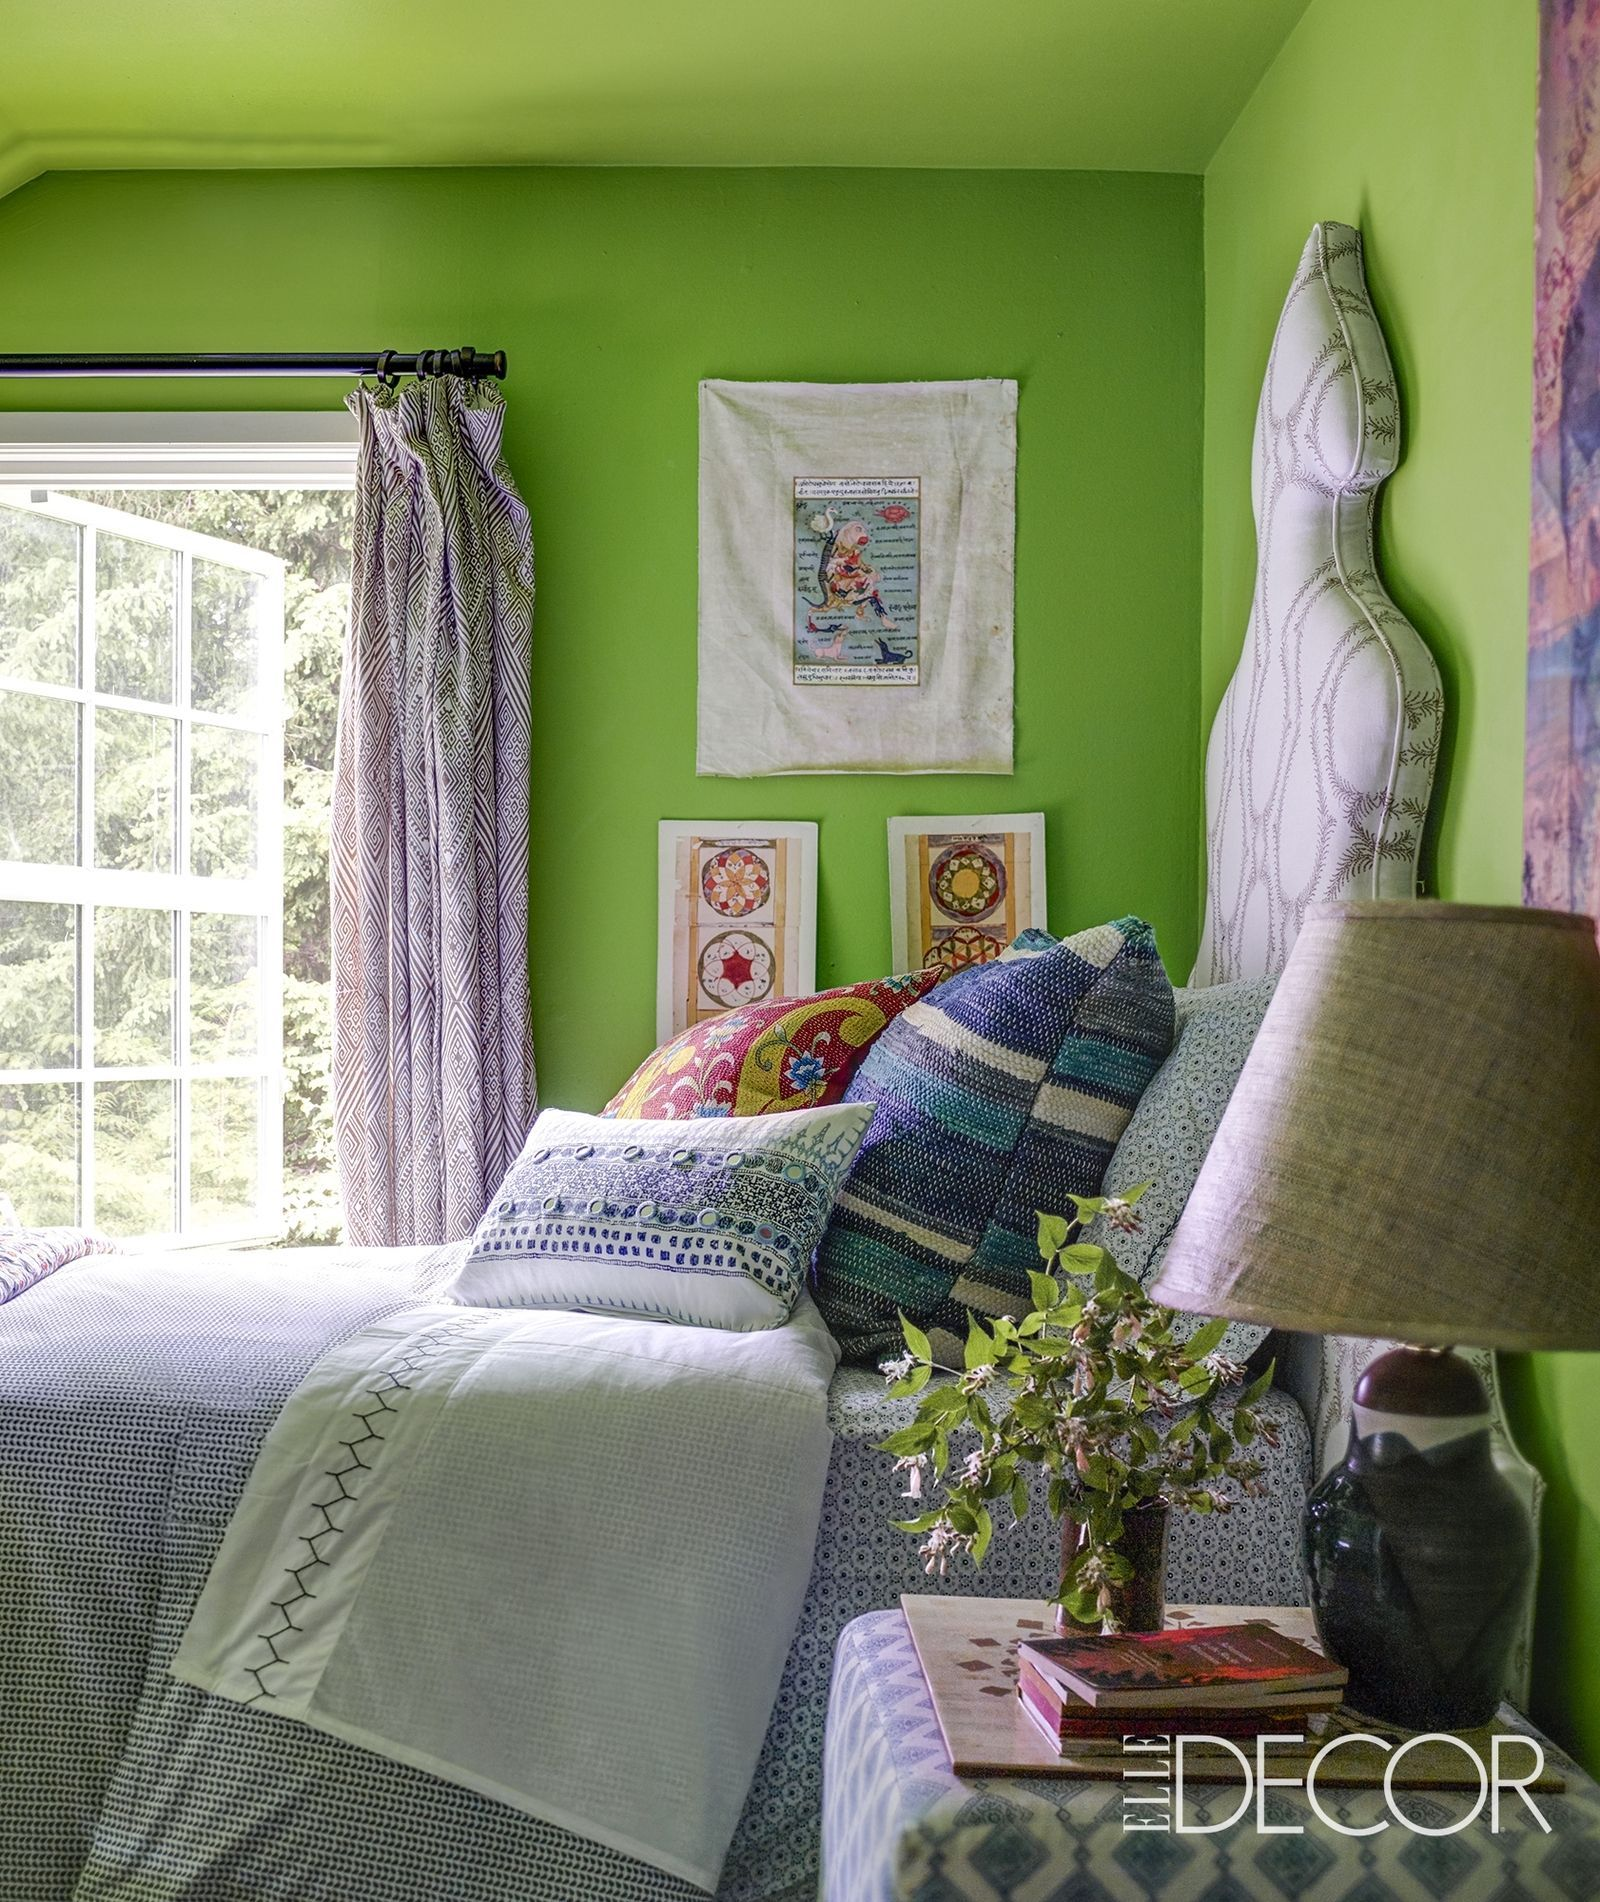 52 Small Bedroom Decorating Ideas That Have Major Impressions: This Is By Far The Most Colorful Country Home We've Ever